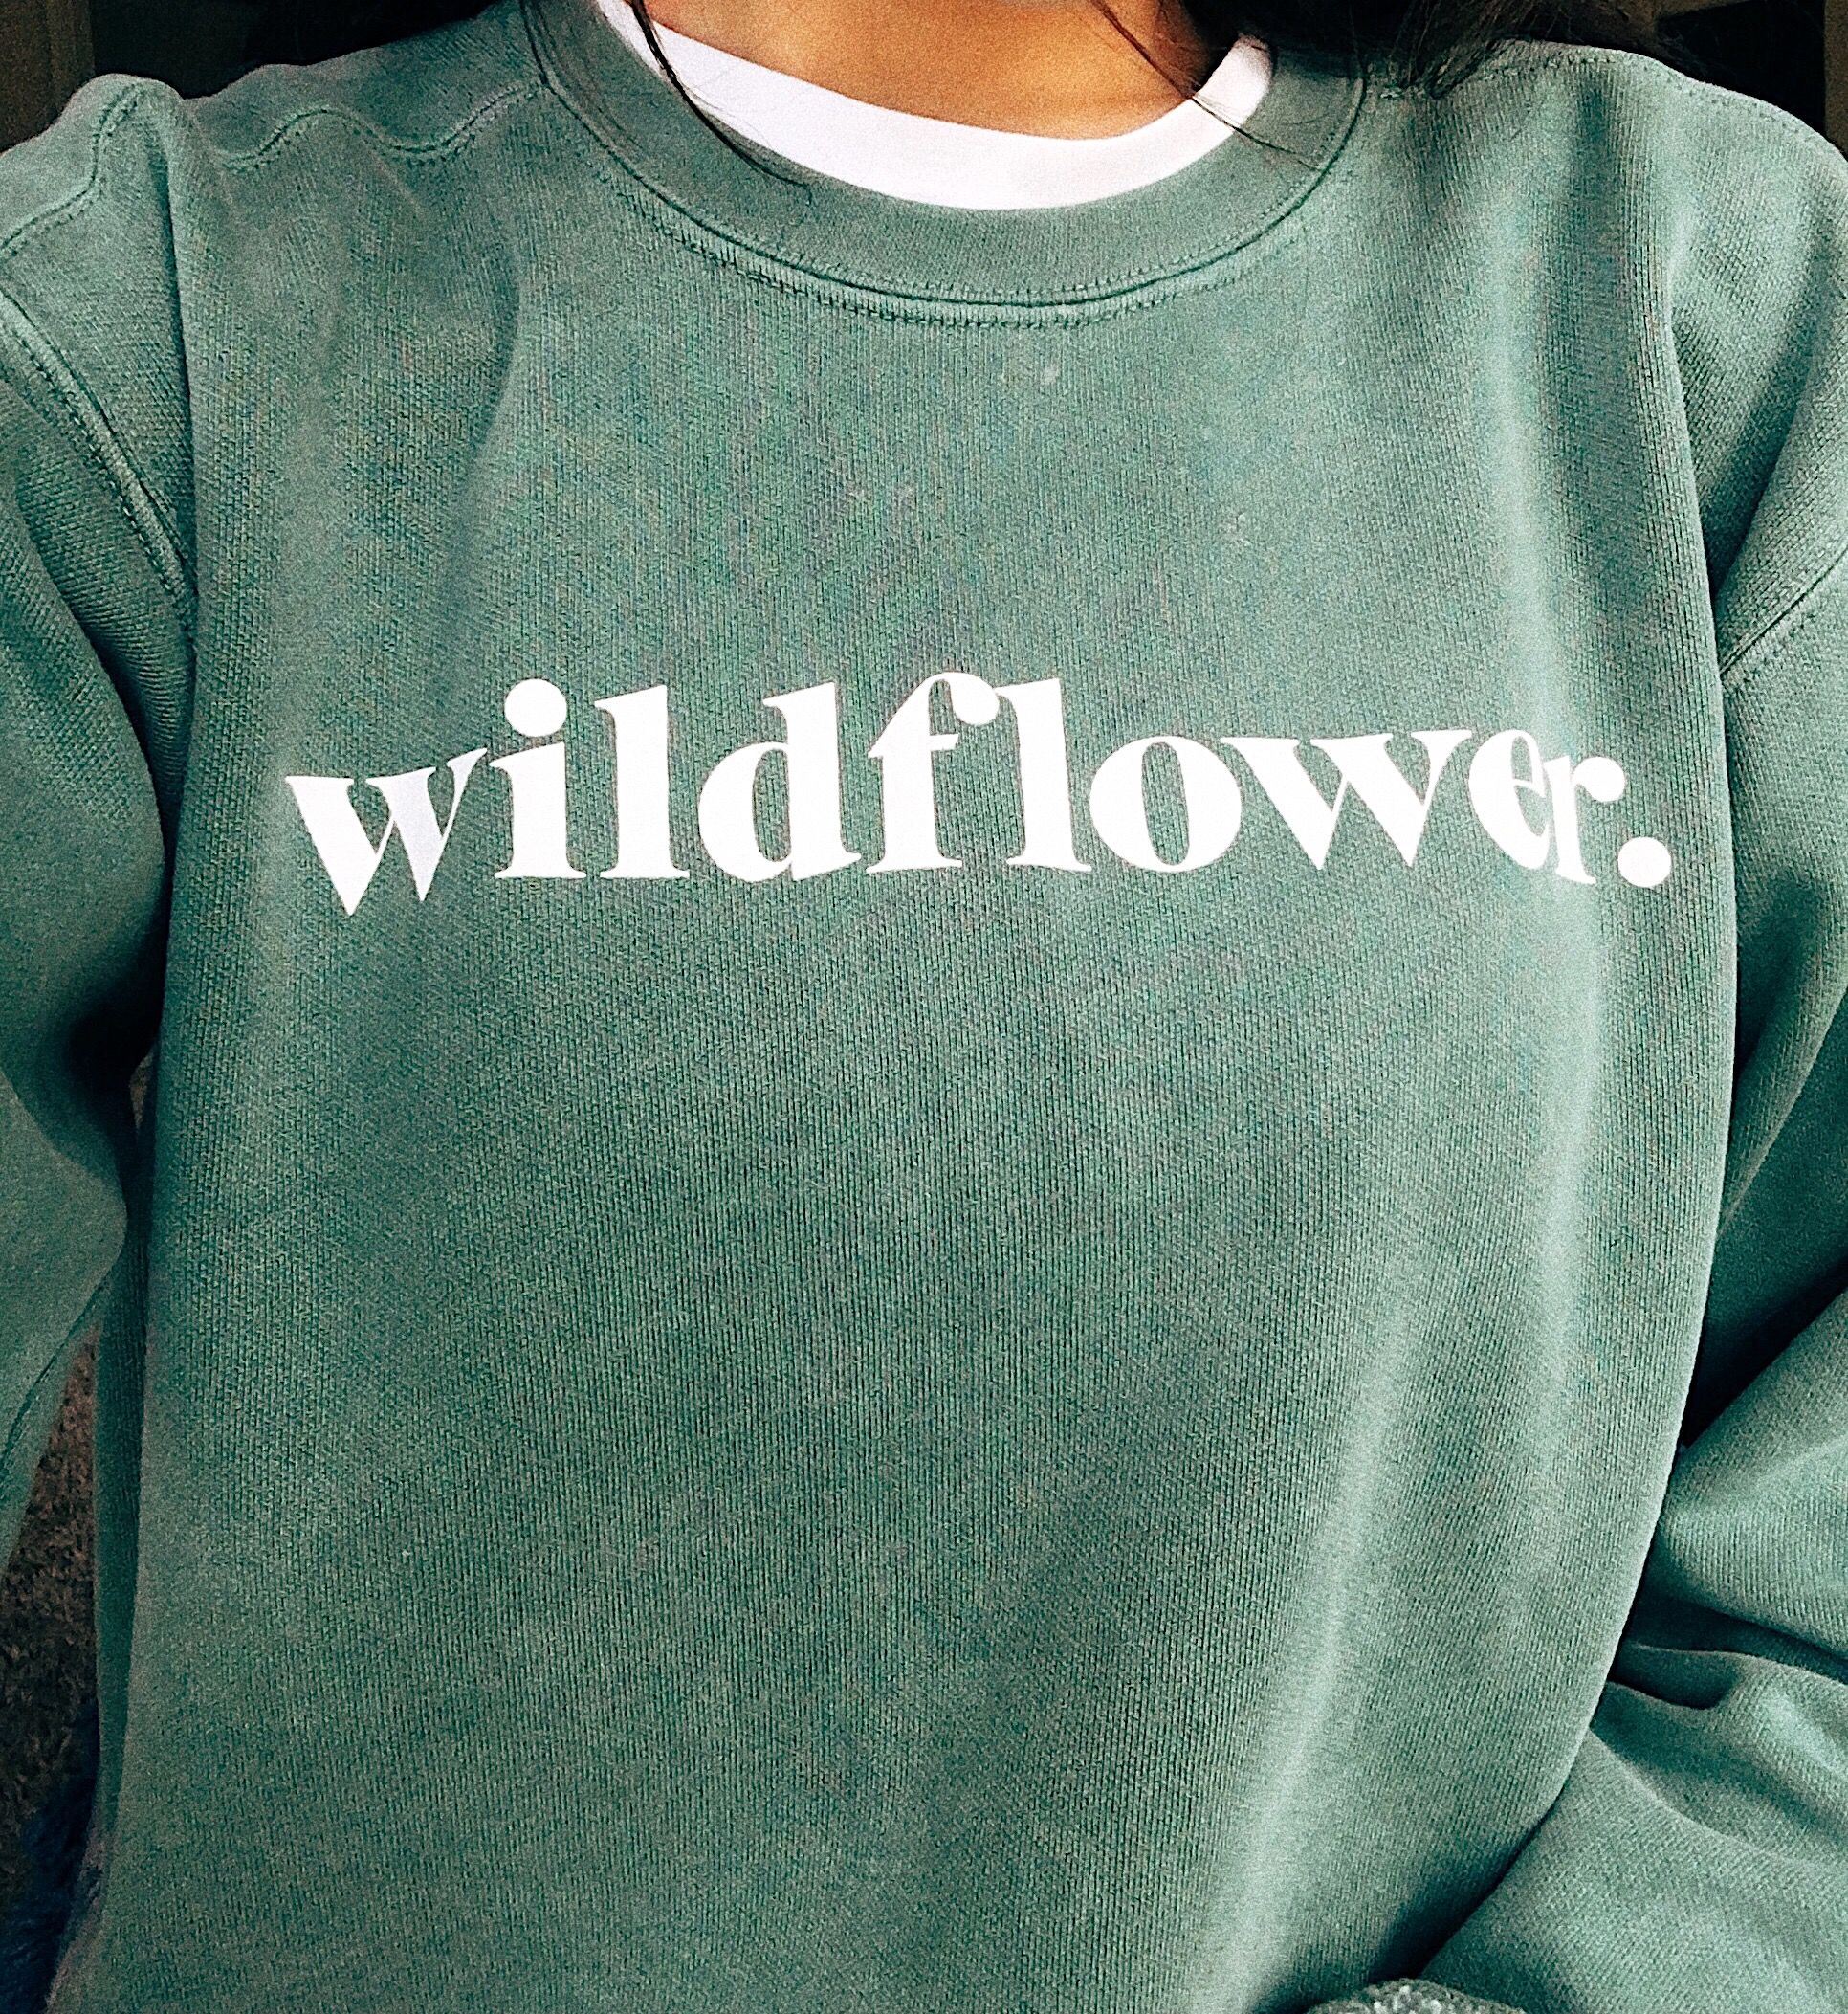 696312d252e1 wldflwr.shop sea foam green crewneck sweater. you are wild ...